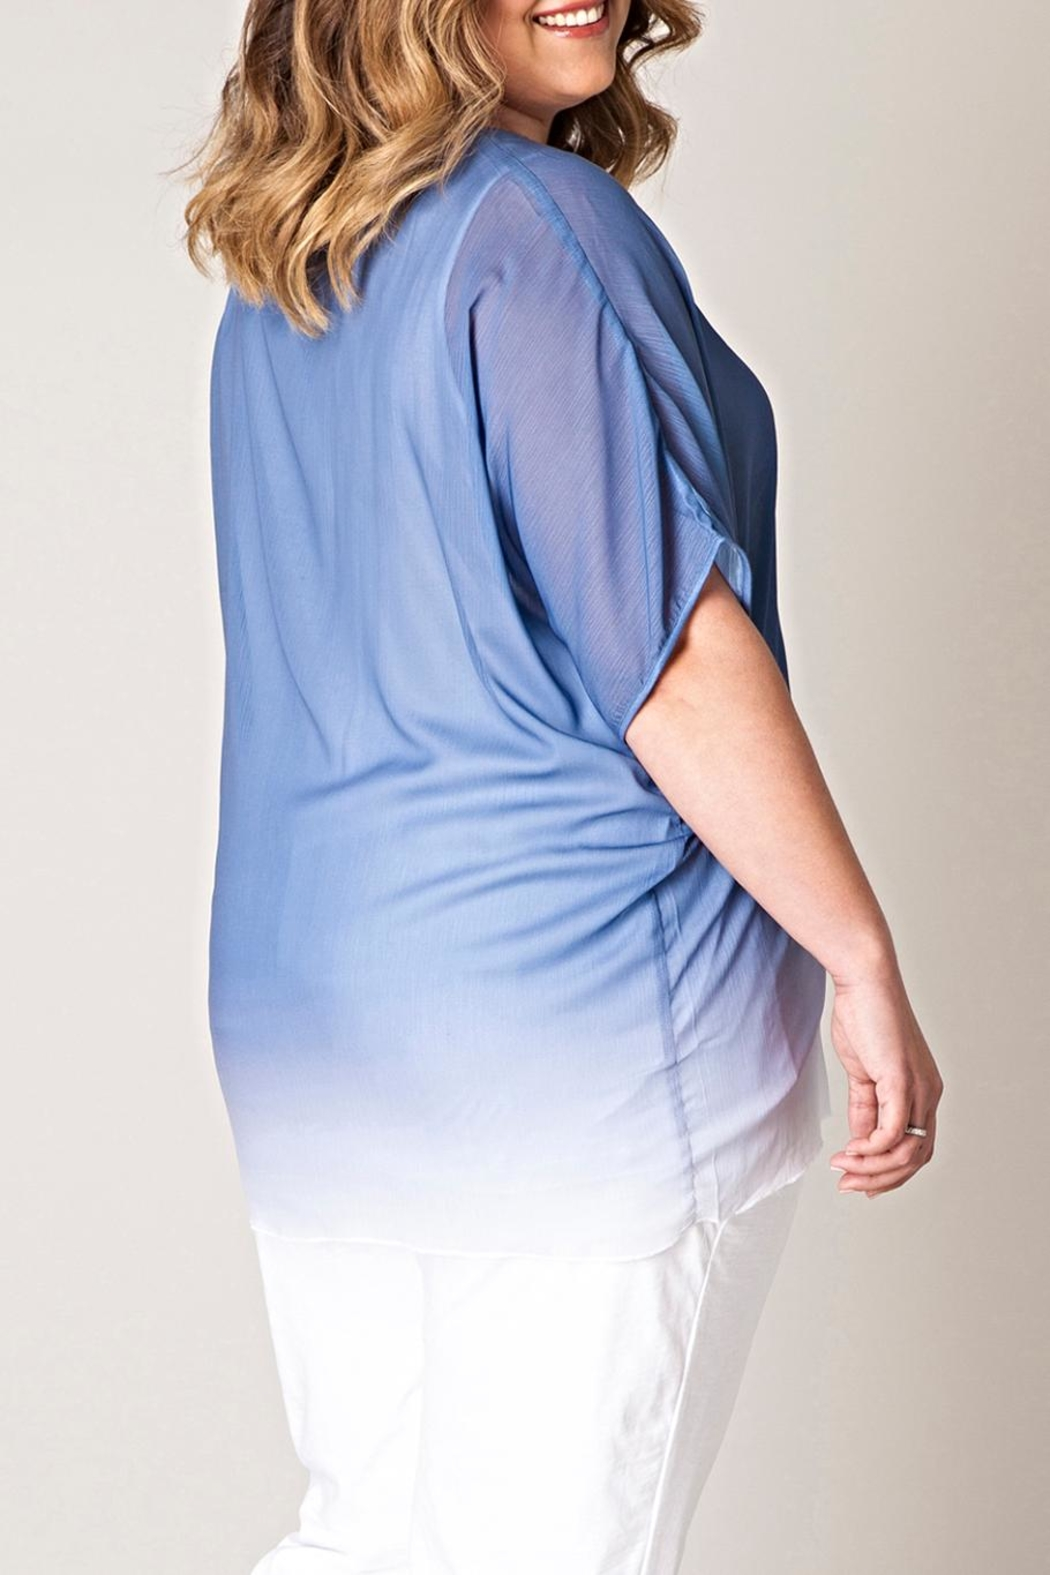 Yest Blue Fading Blouse - Front Full Image